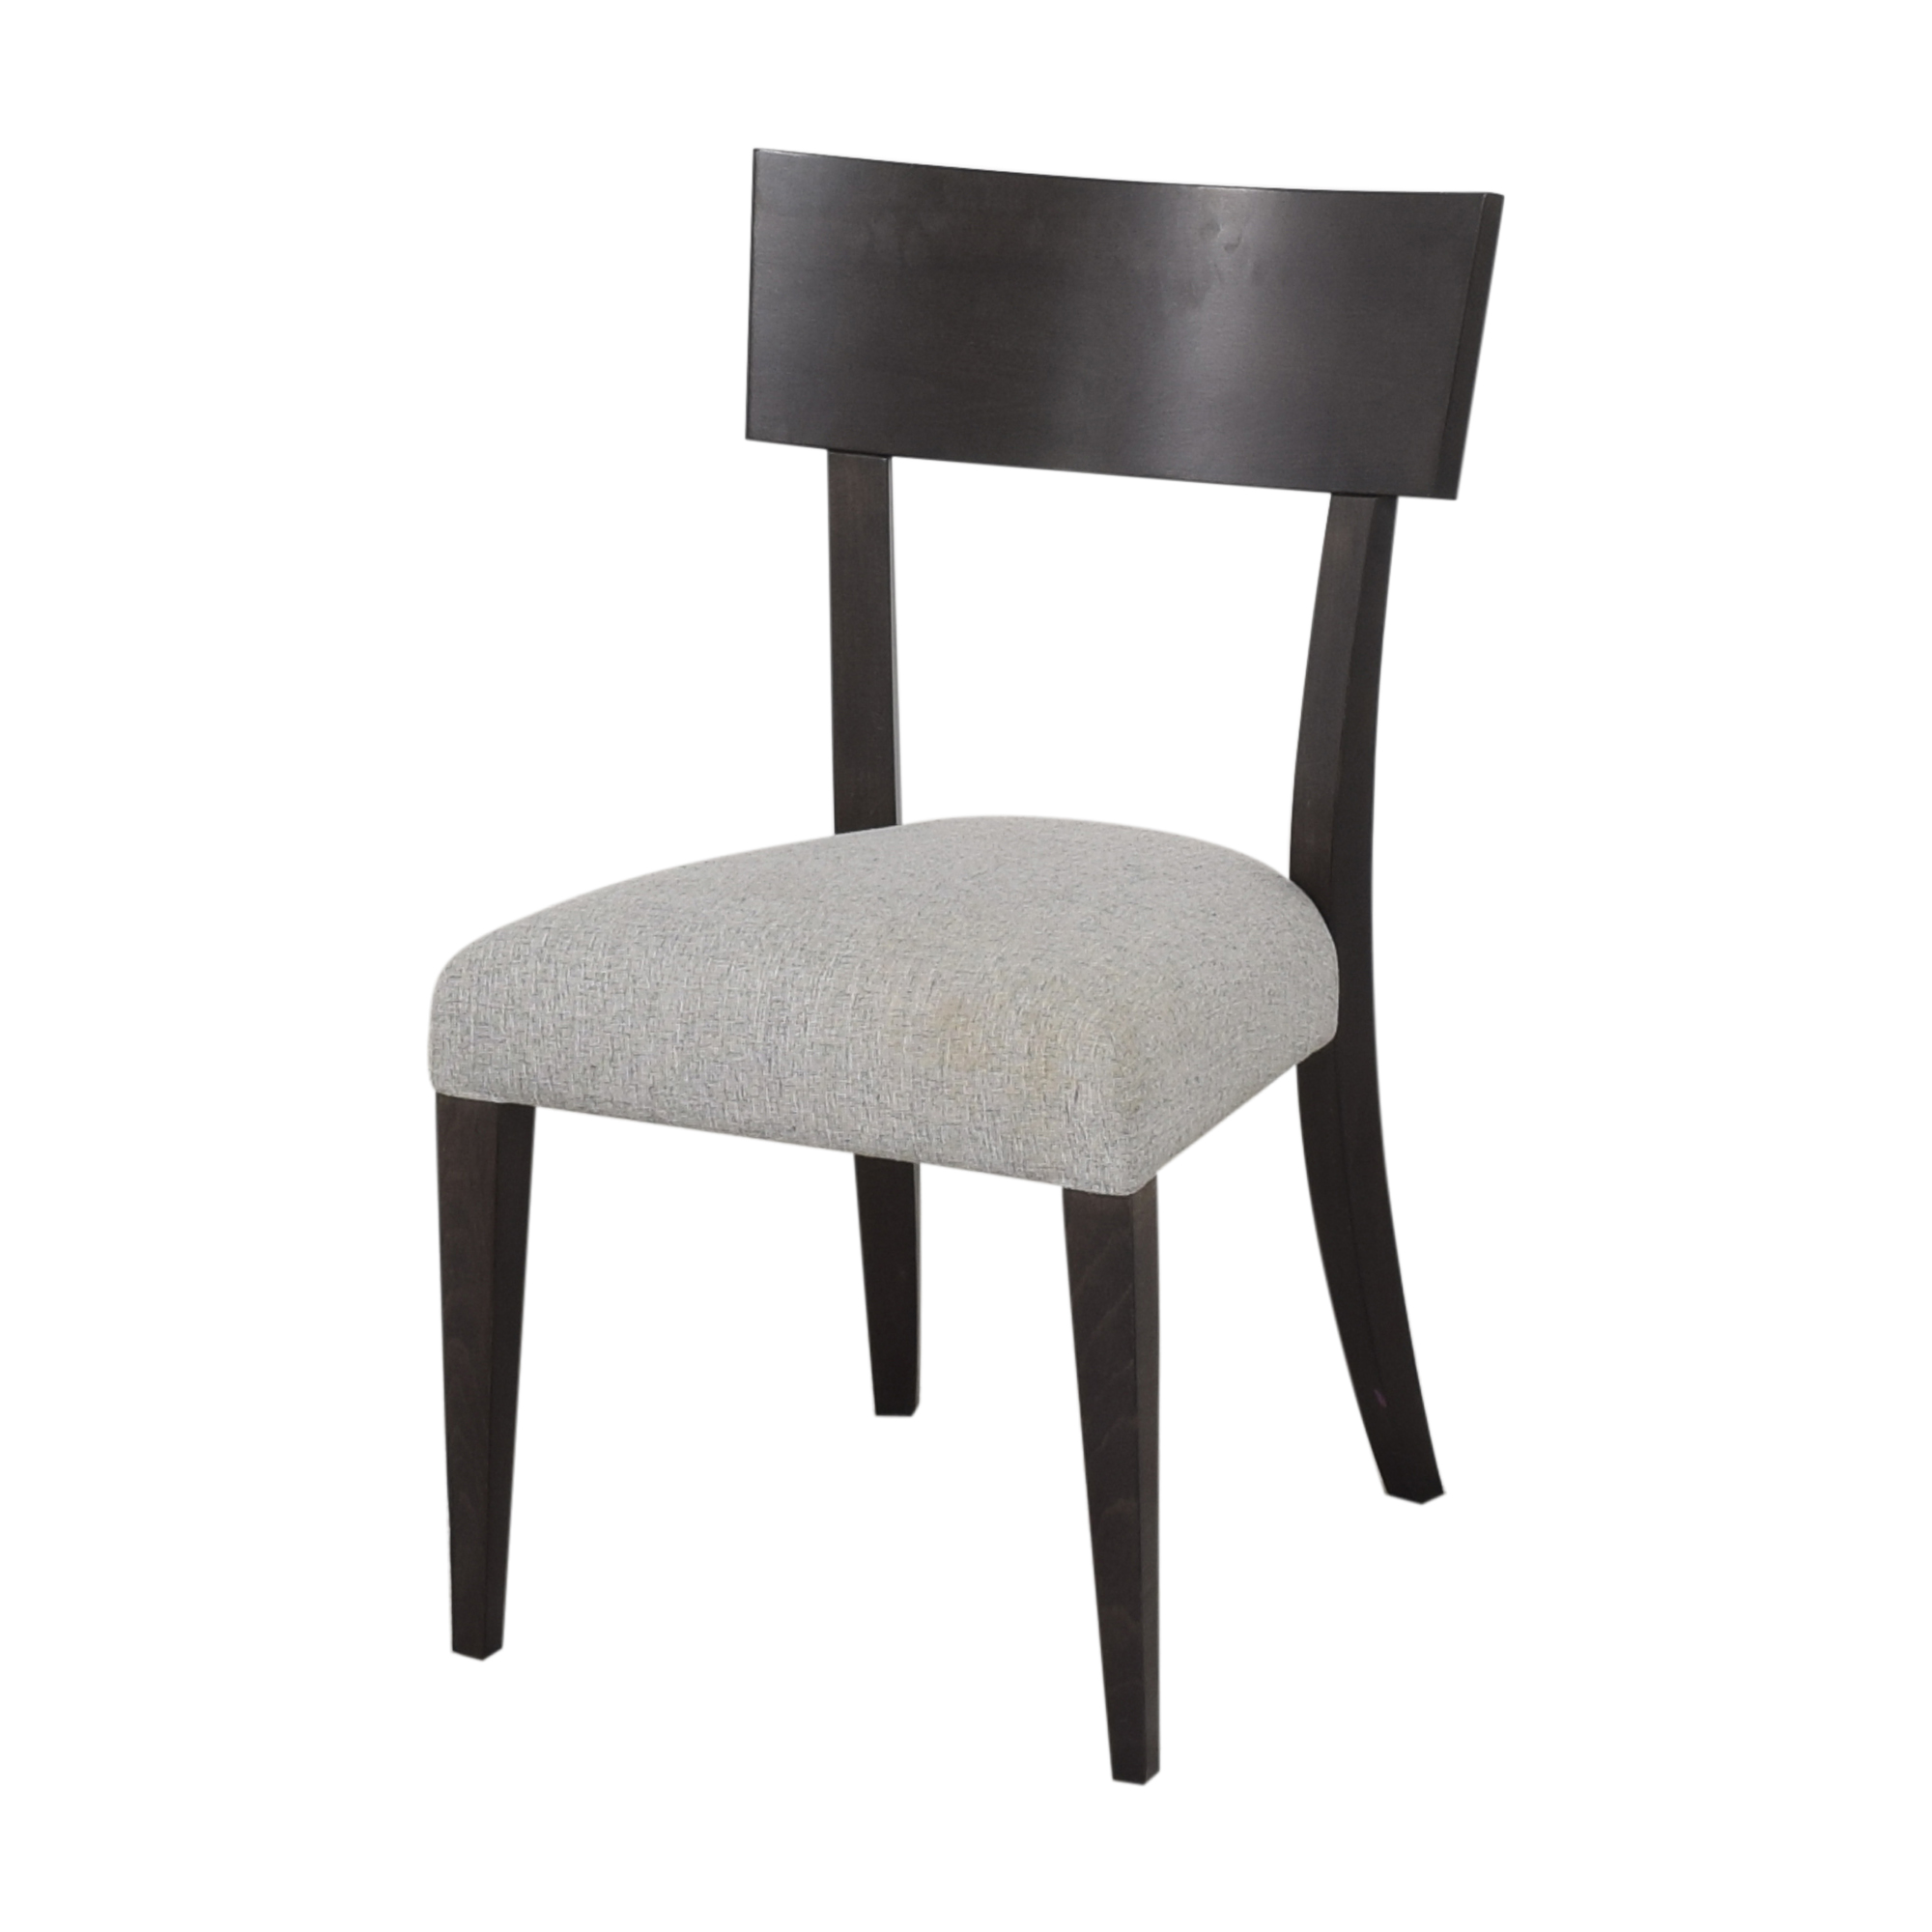 Saloom Saloom Peter Francis Dining Side Chairs on sale